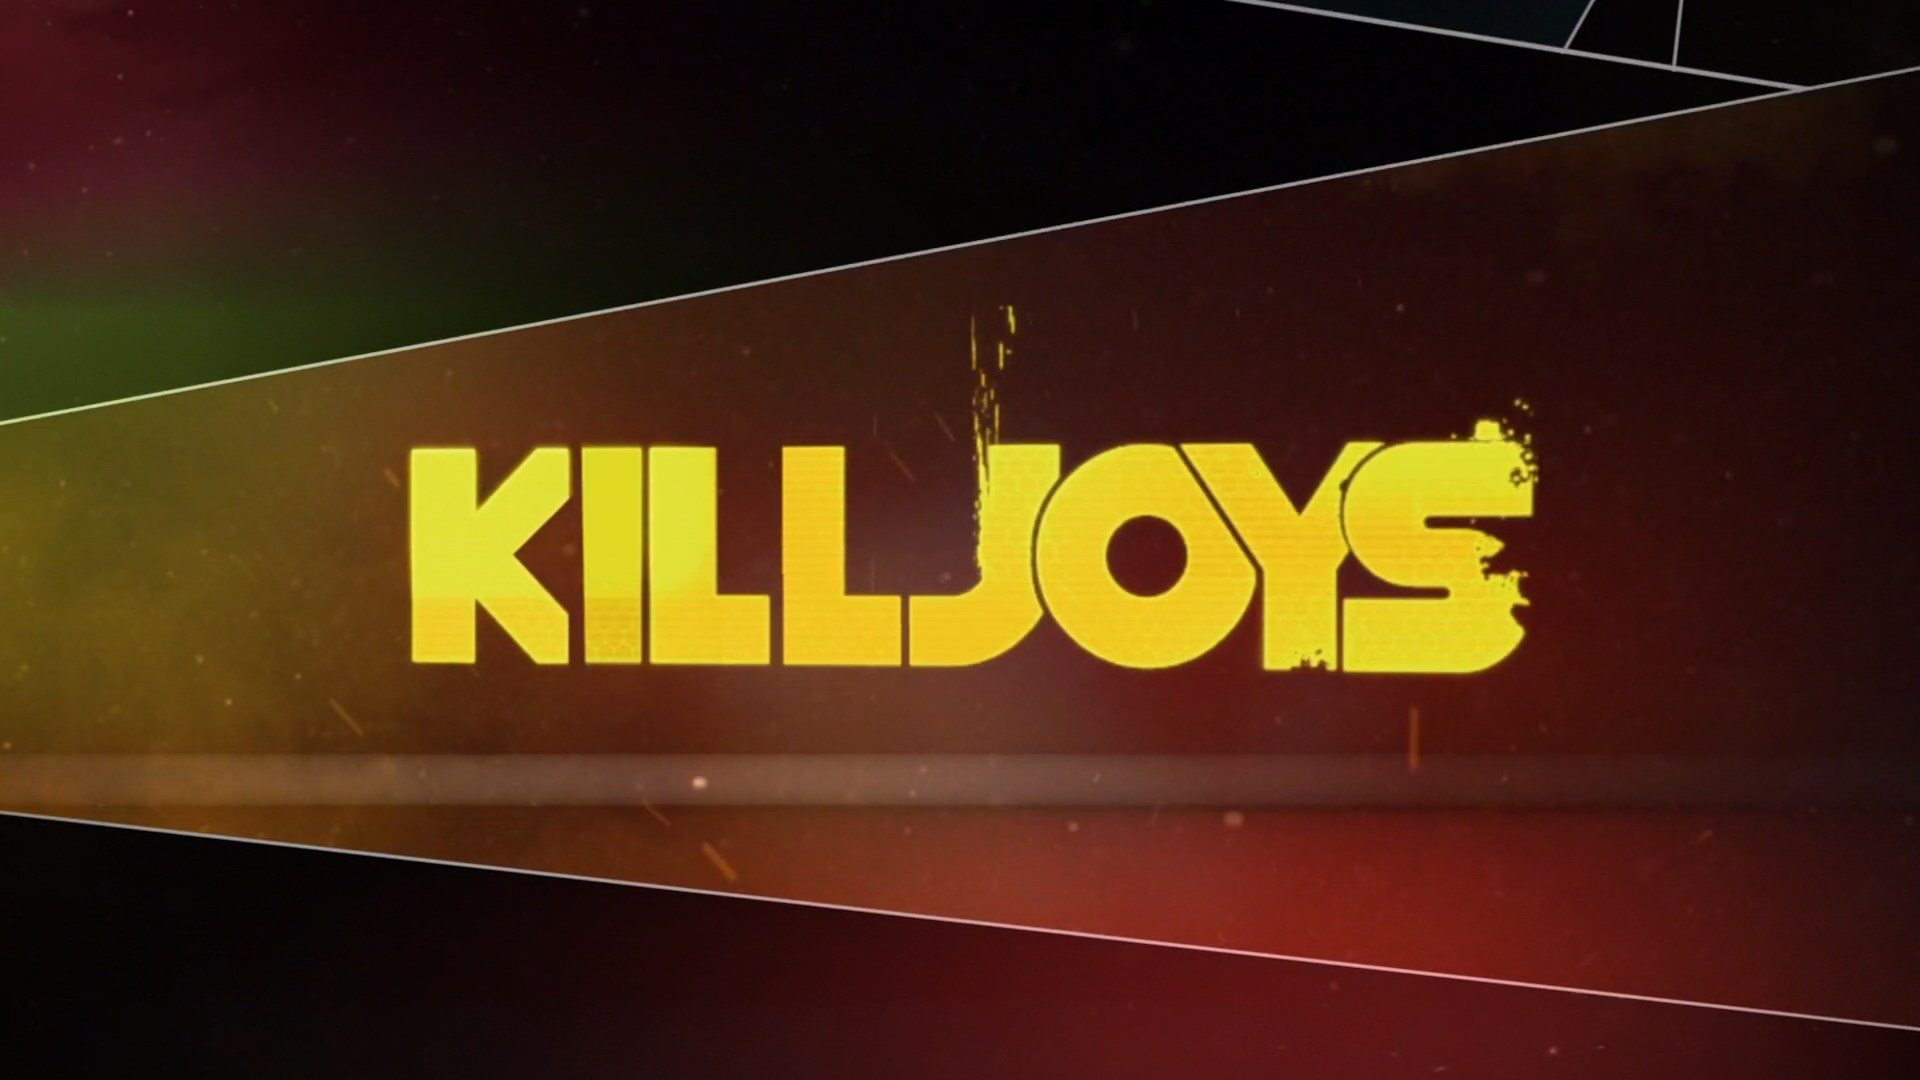 Killjoys.S01E01.1080p.WEB-DL.DD5.1.H.264-RARBG.mkv_snapshot_04.27_[2015.06.28_17.59.53]